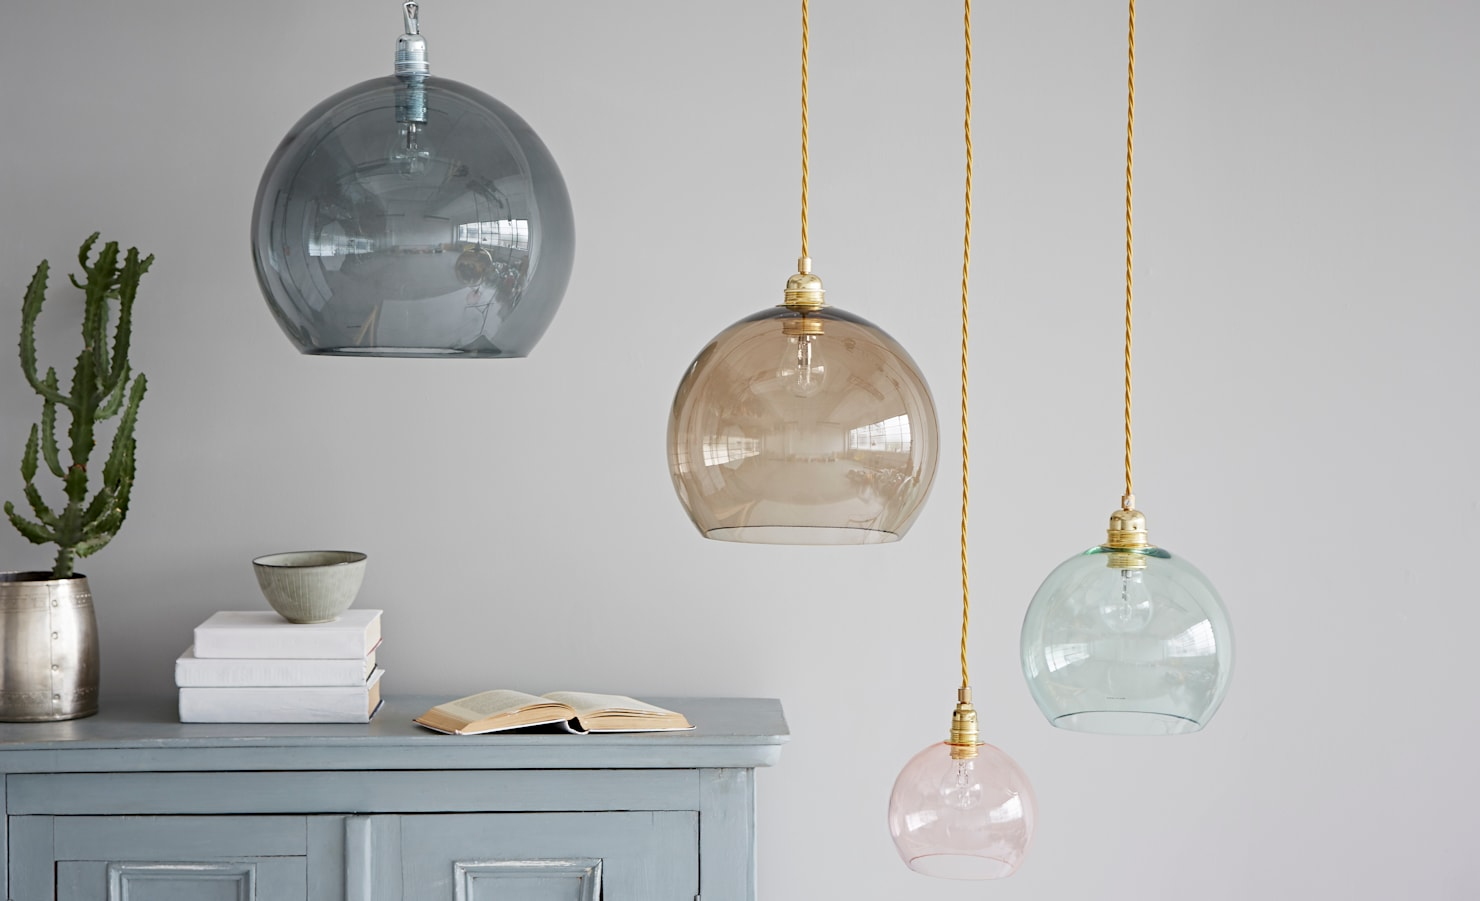 Lighten up your home with these 24 cool lamps!